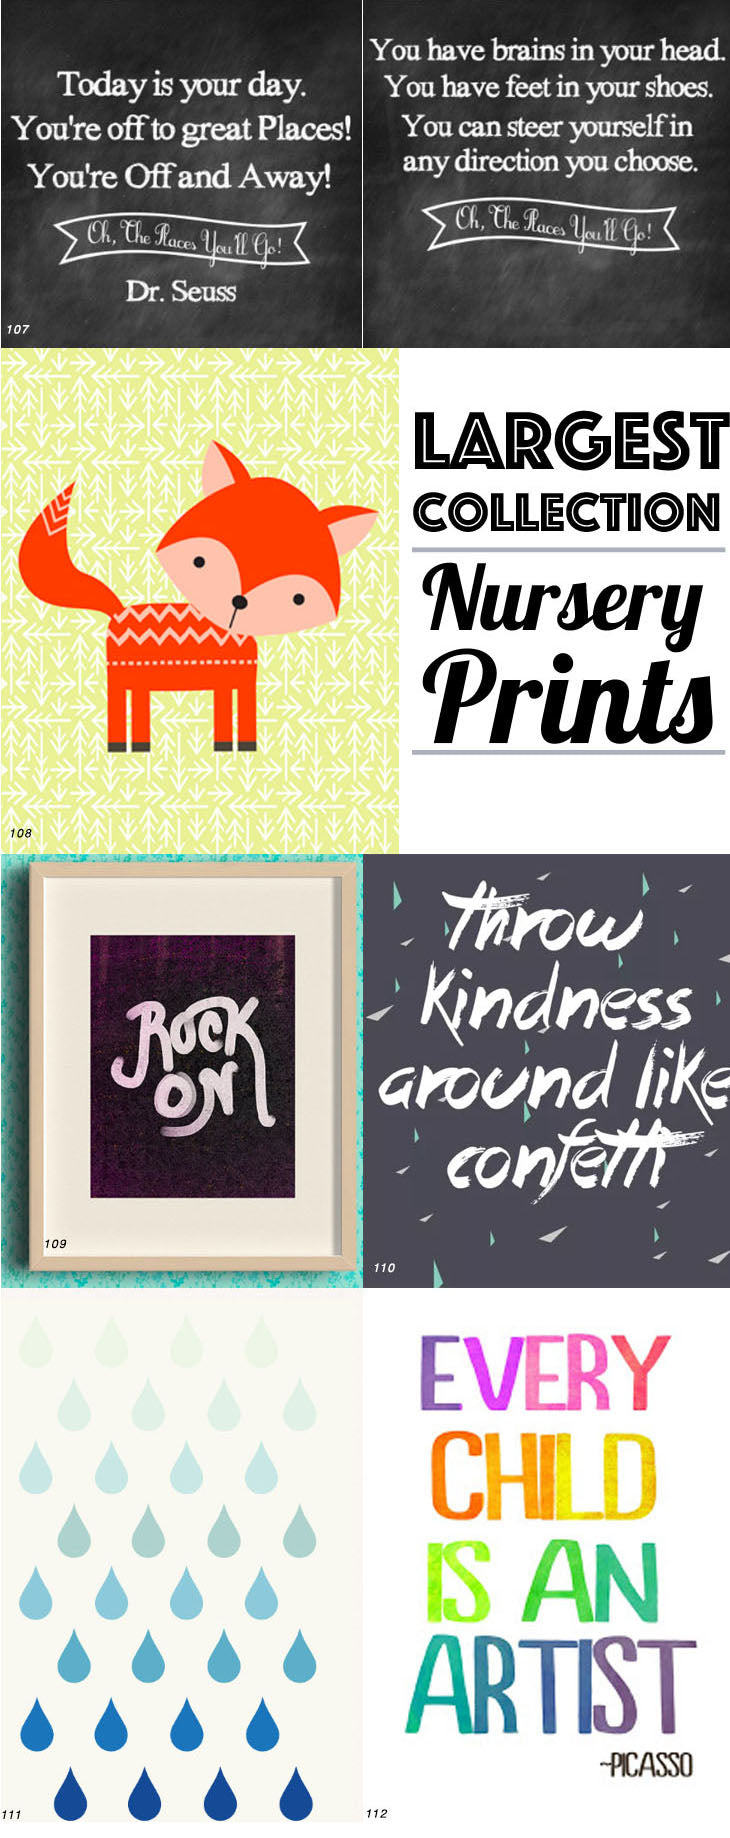 Largest Collection Nursery Prints